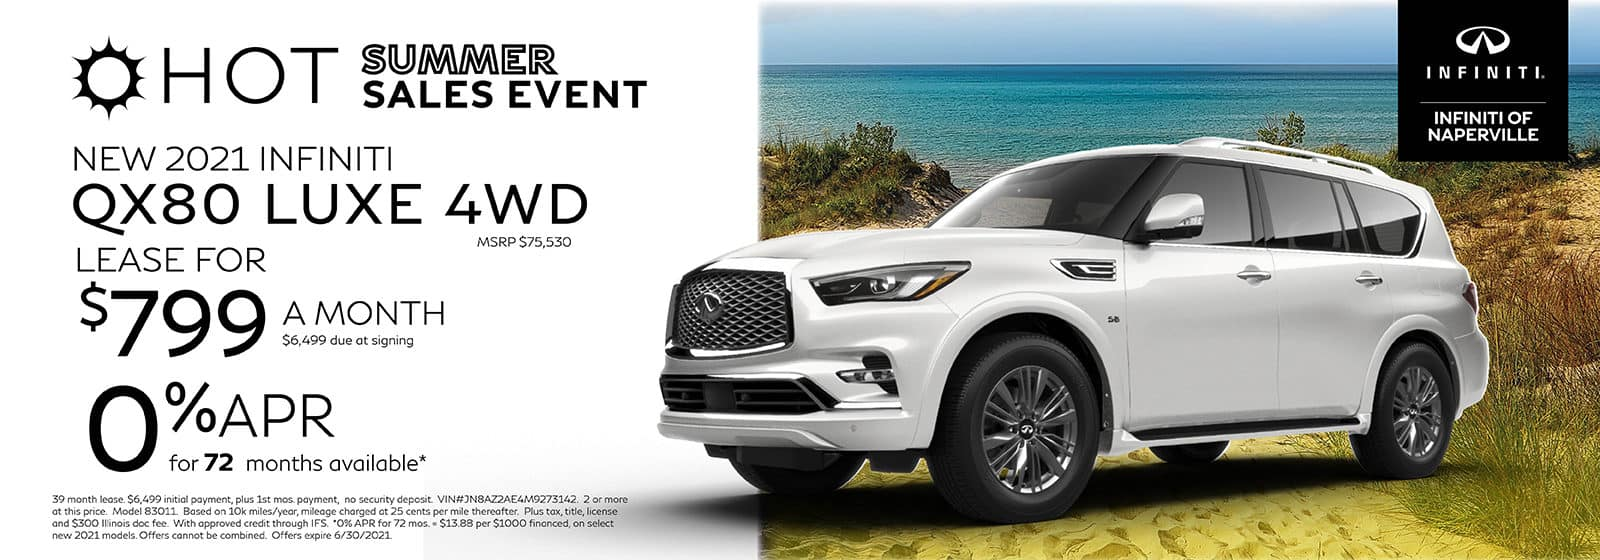 2021 INFINITI QX80 Lease or Finance Offer   INFINITI of Naperville